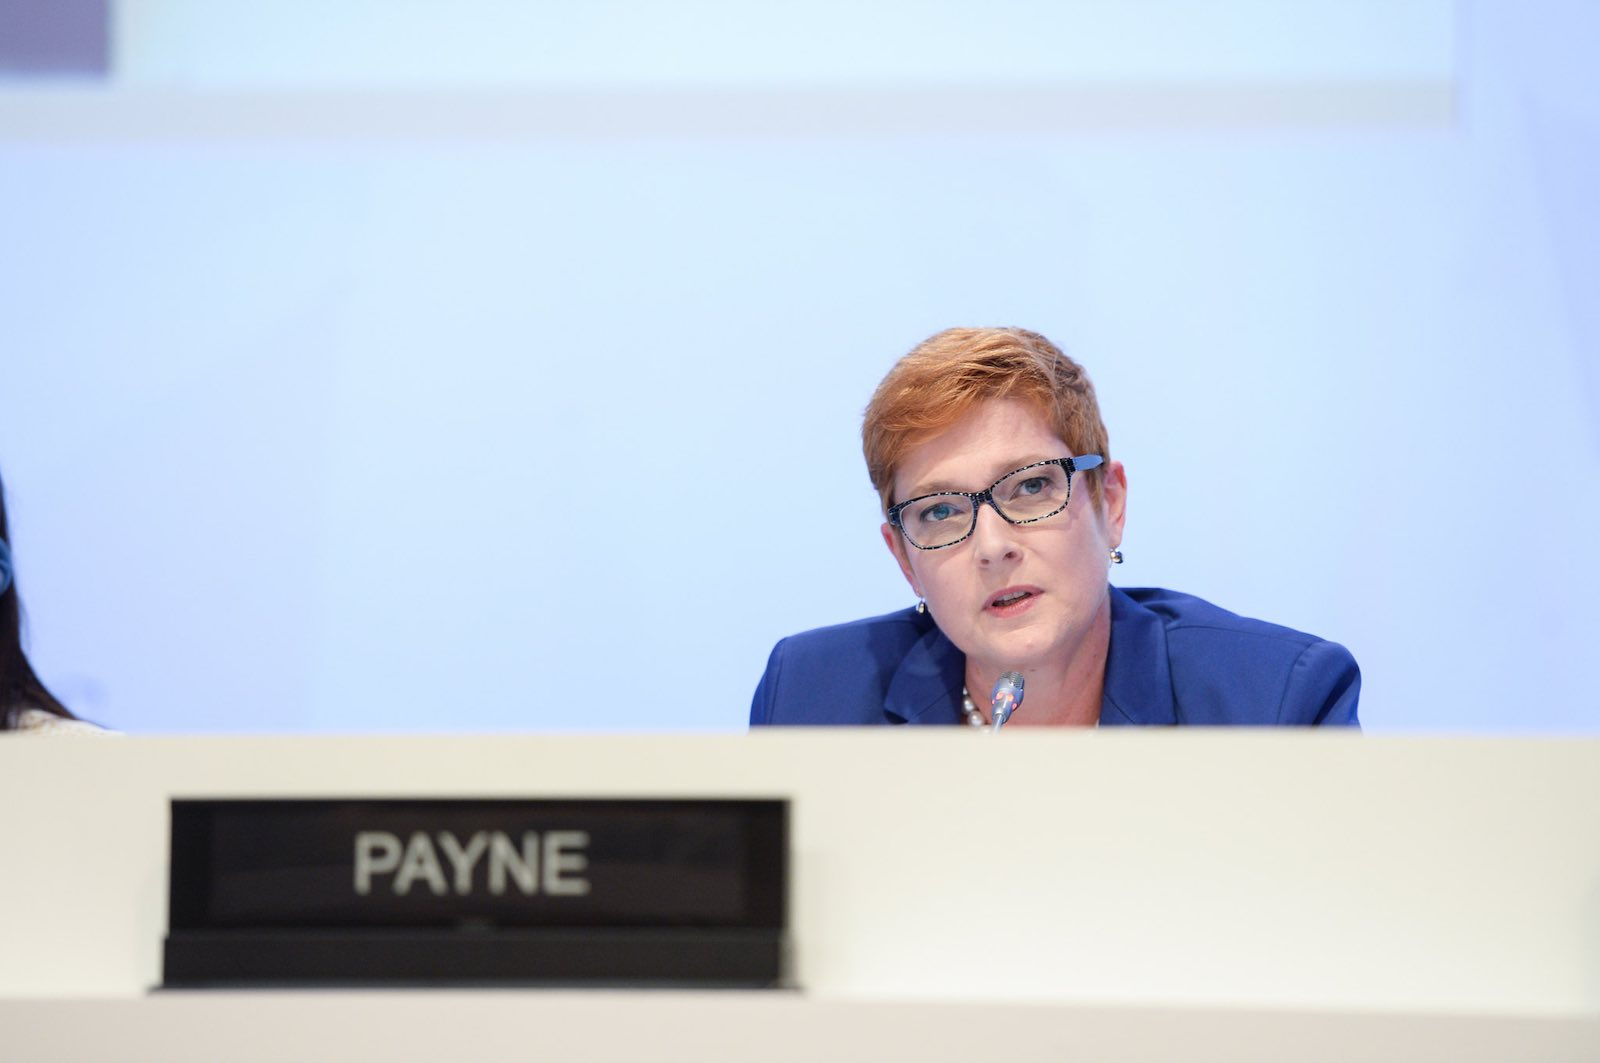 Safe pair of hands: Foreign Minister Marise Payne (Photo: IISS/Flickr)